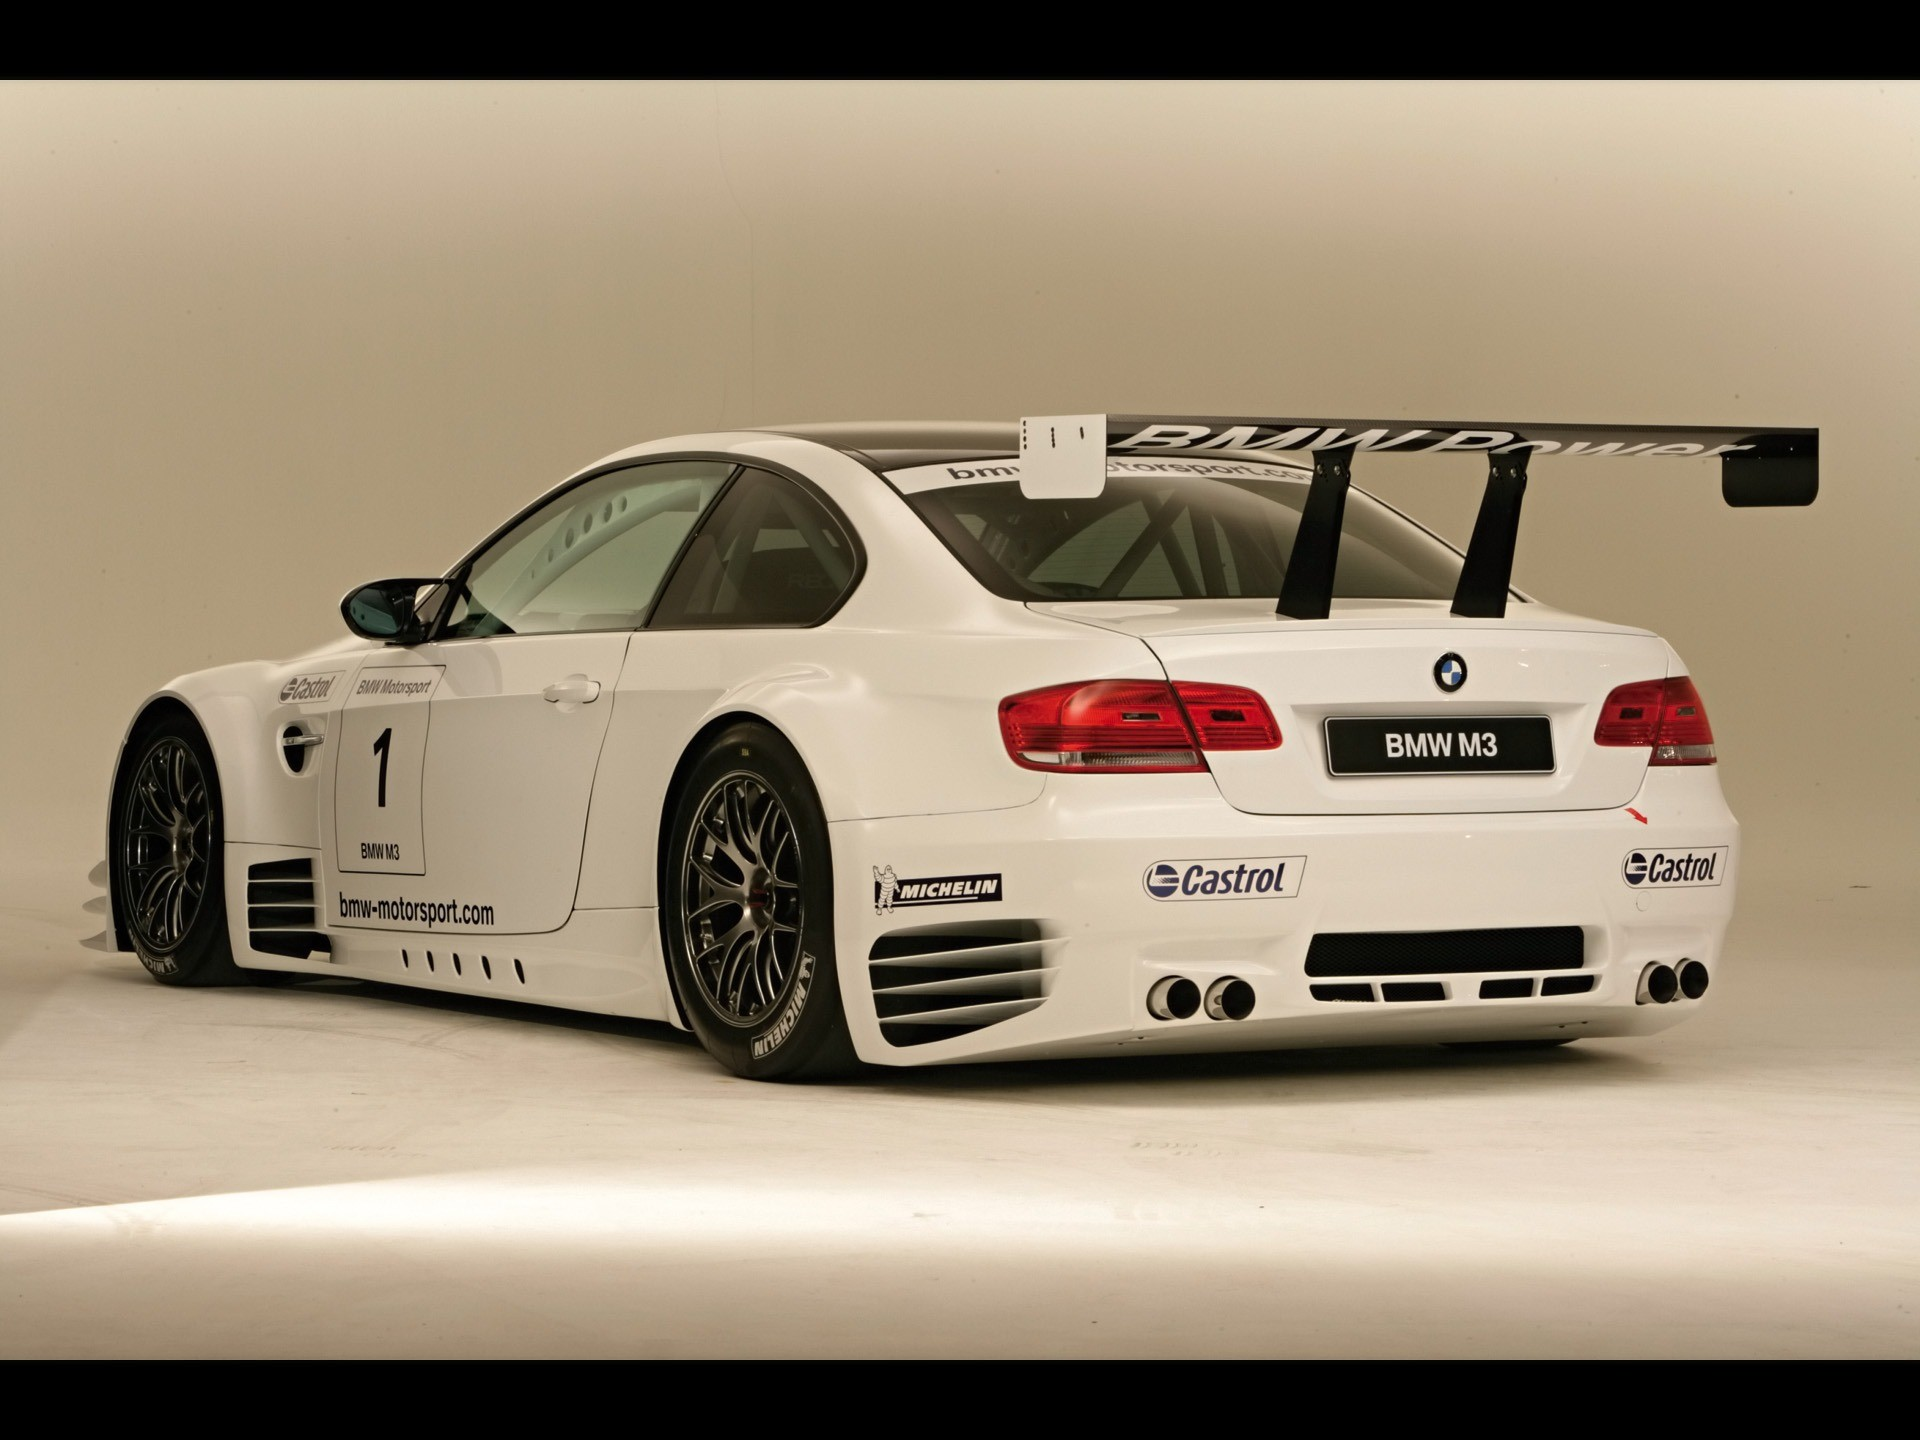 Res: 1920x1440, BMW M3 race car Wallpaper BMW Cars